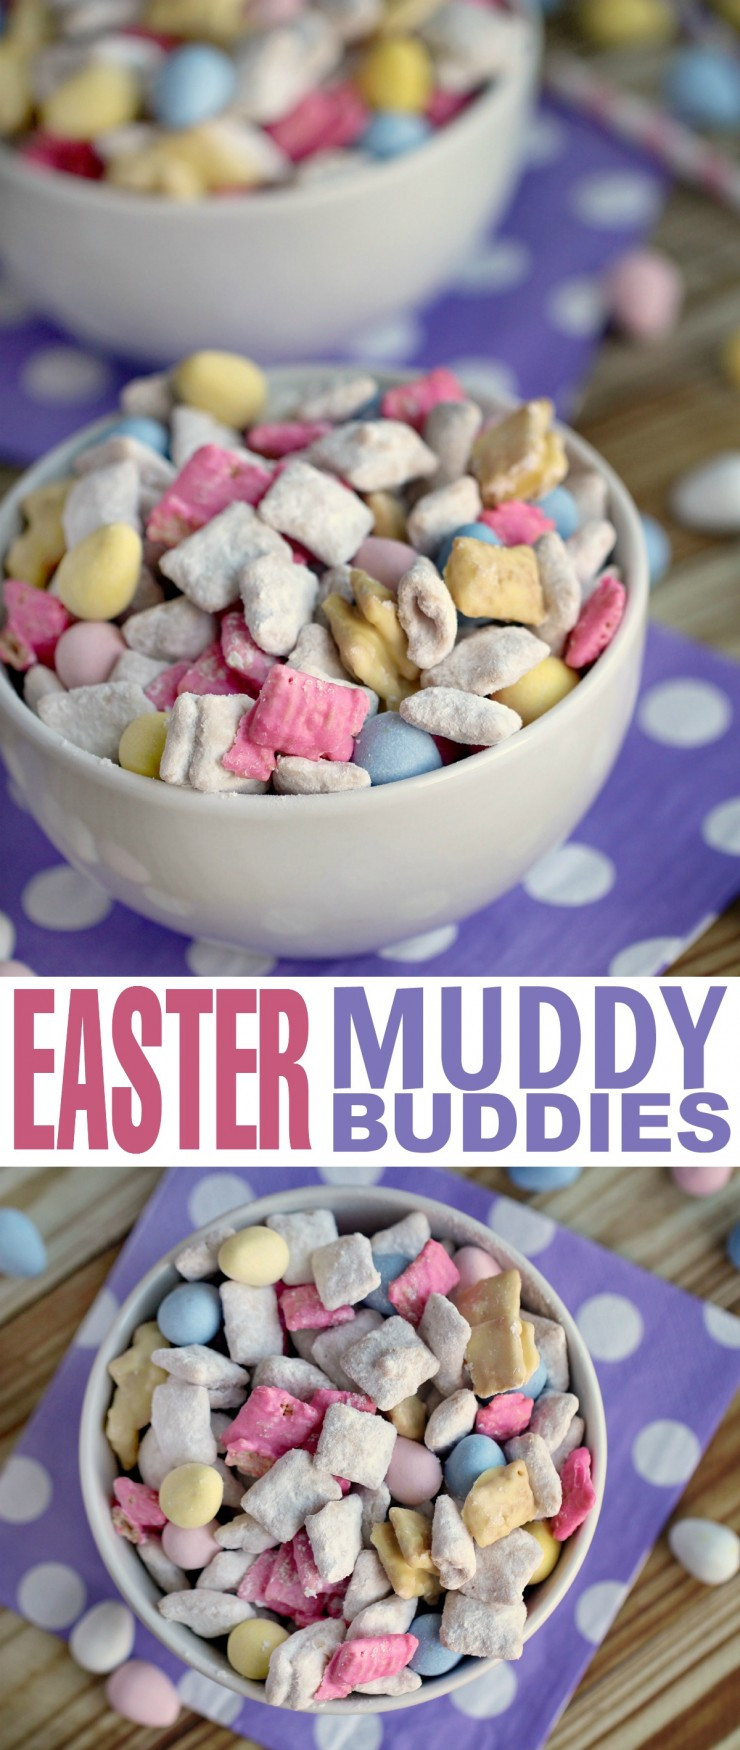 Recipe For Snacks Easter Muddy Bud s Frugal Mom Eh